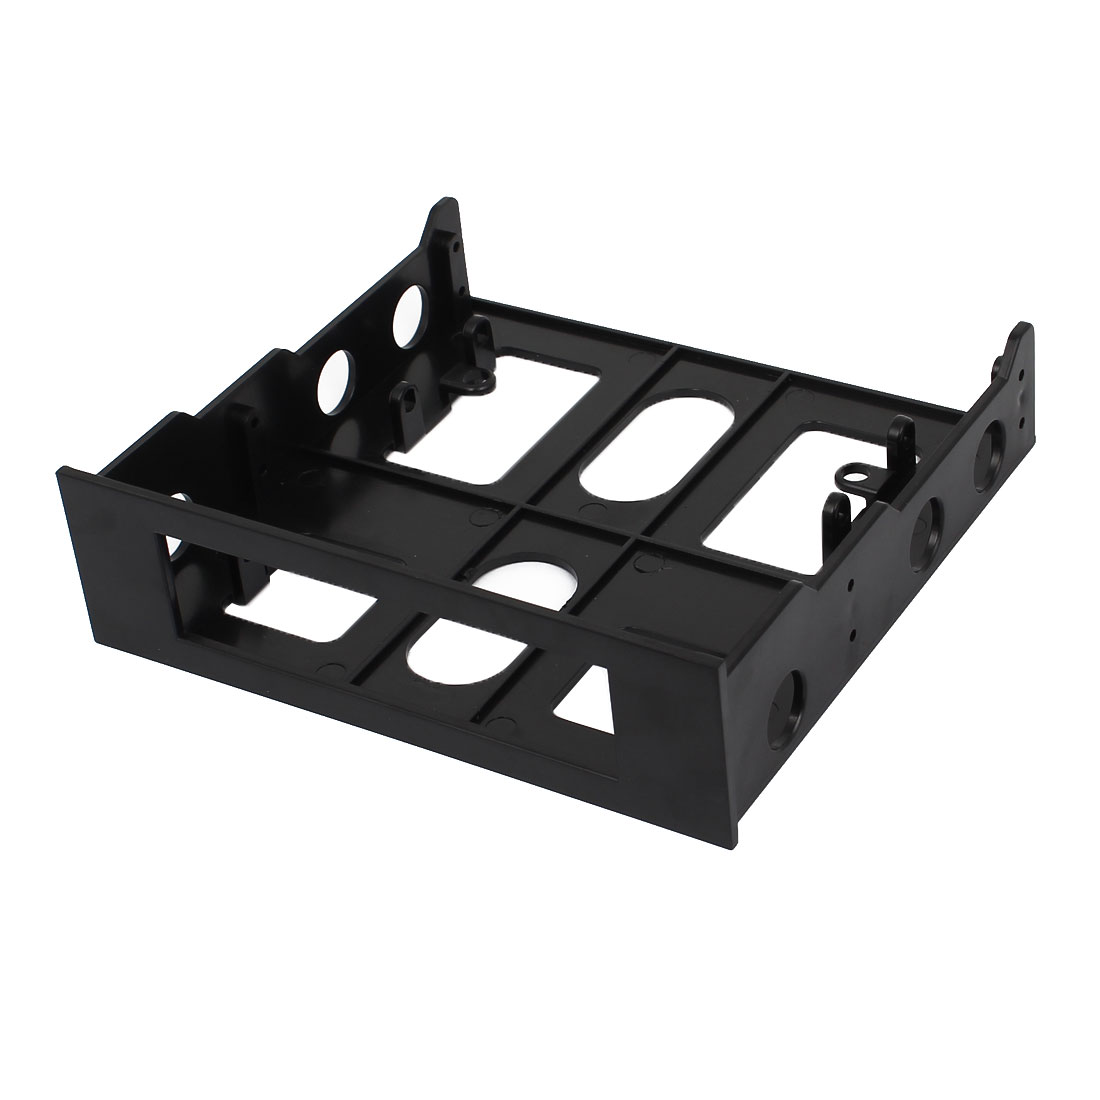 Computer-Case-3-5-Hard-Drive-to-5-25-Front-Bay-Bracket-Adapter